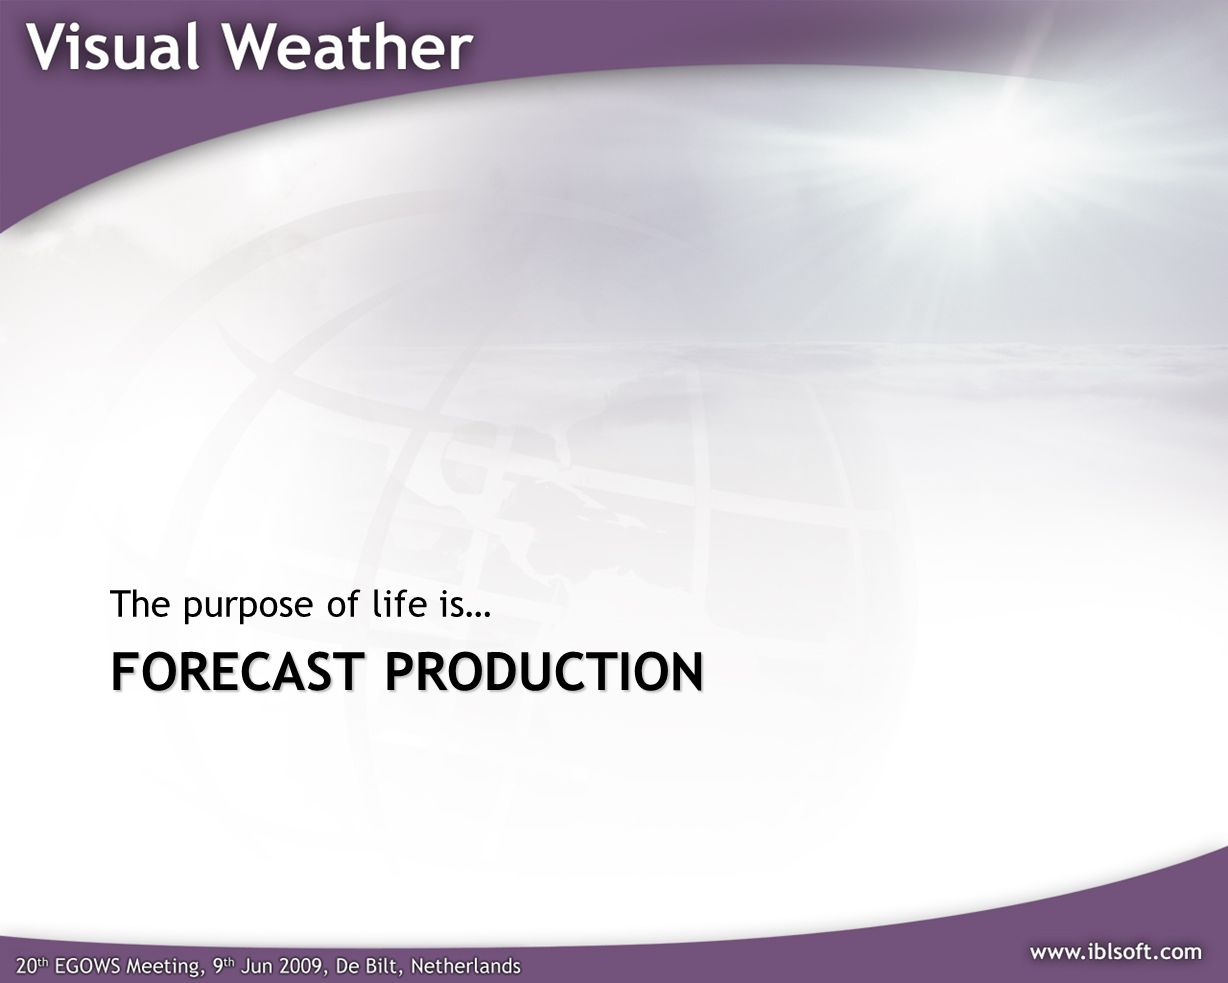 The purpose of life is… FORECAST production